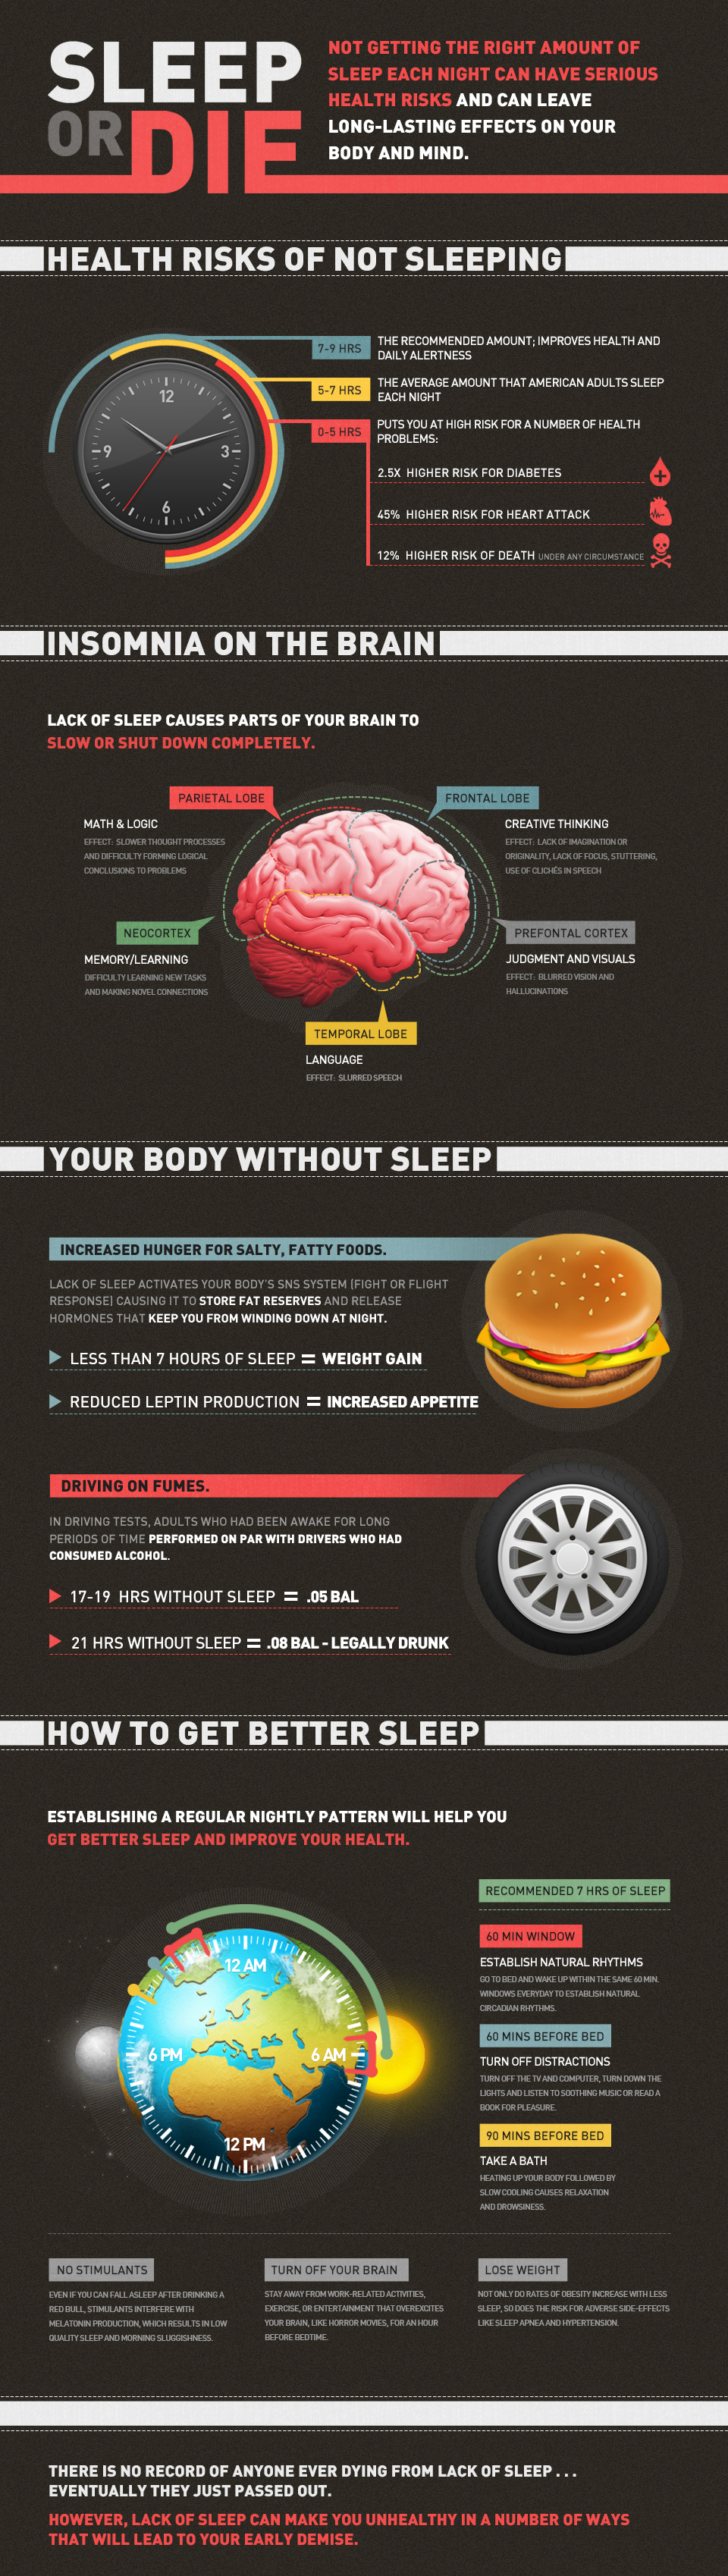 Negative Effects that Lack of Sleep Has on Your Body